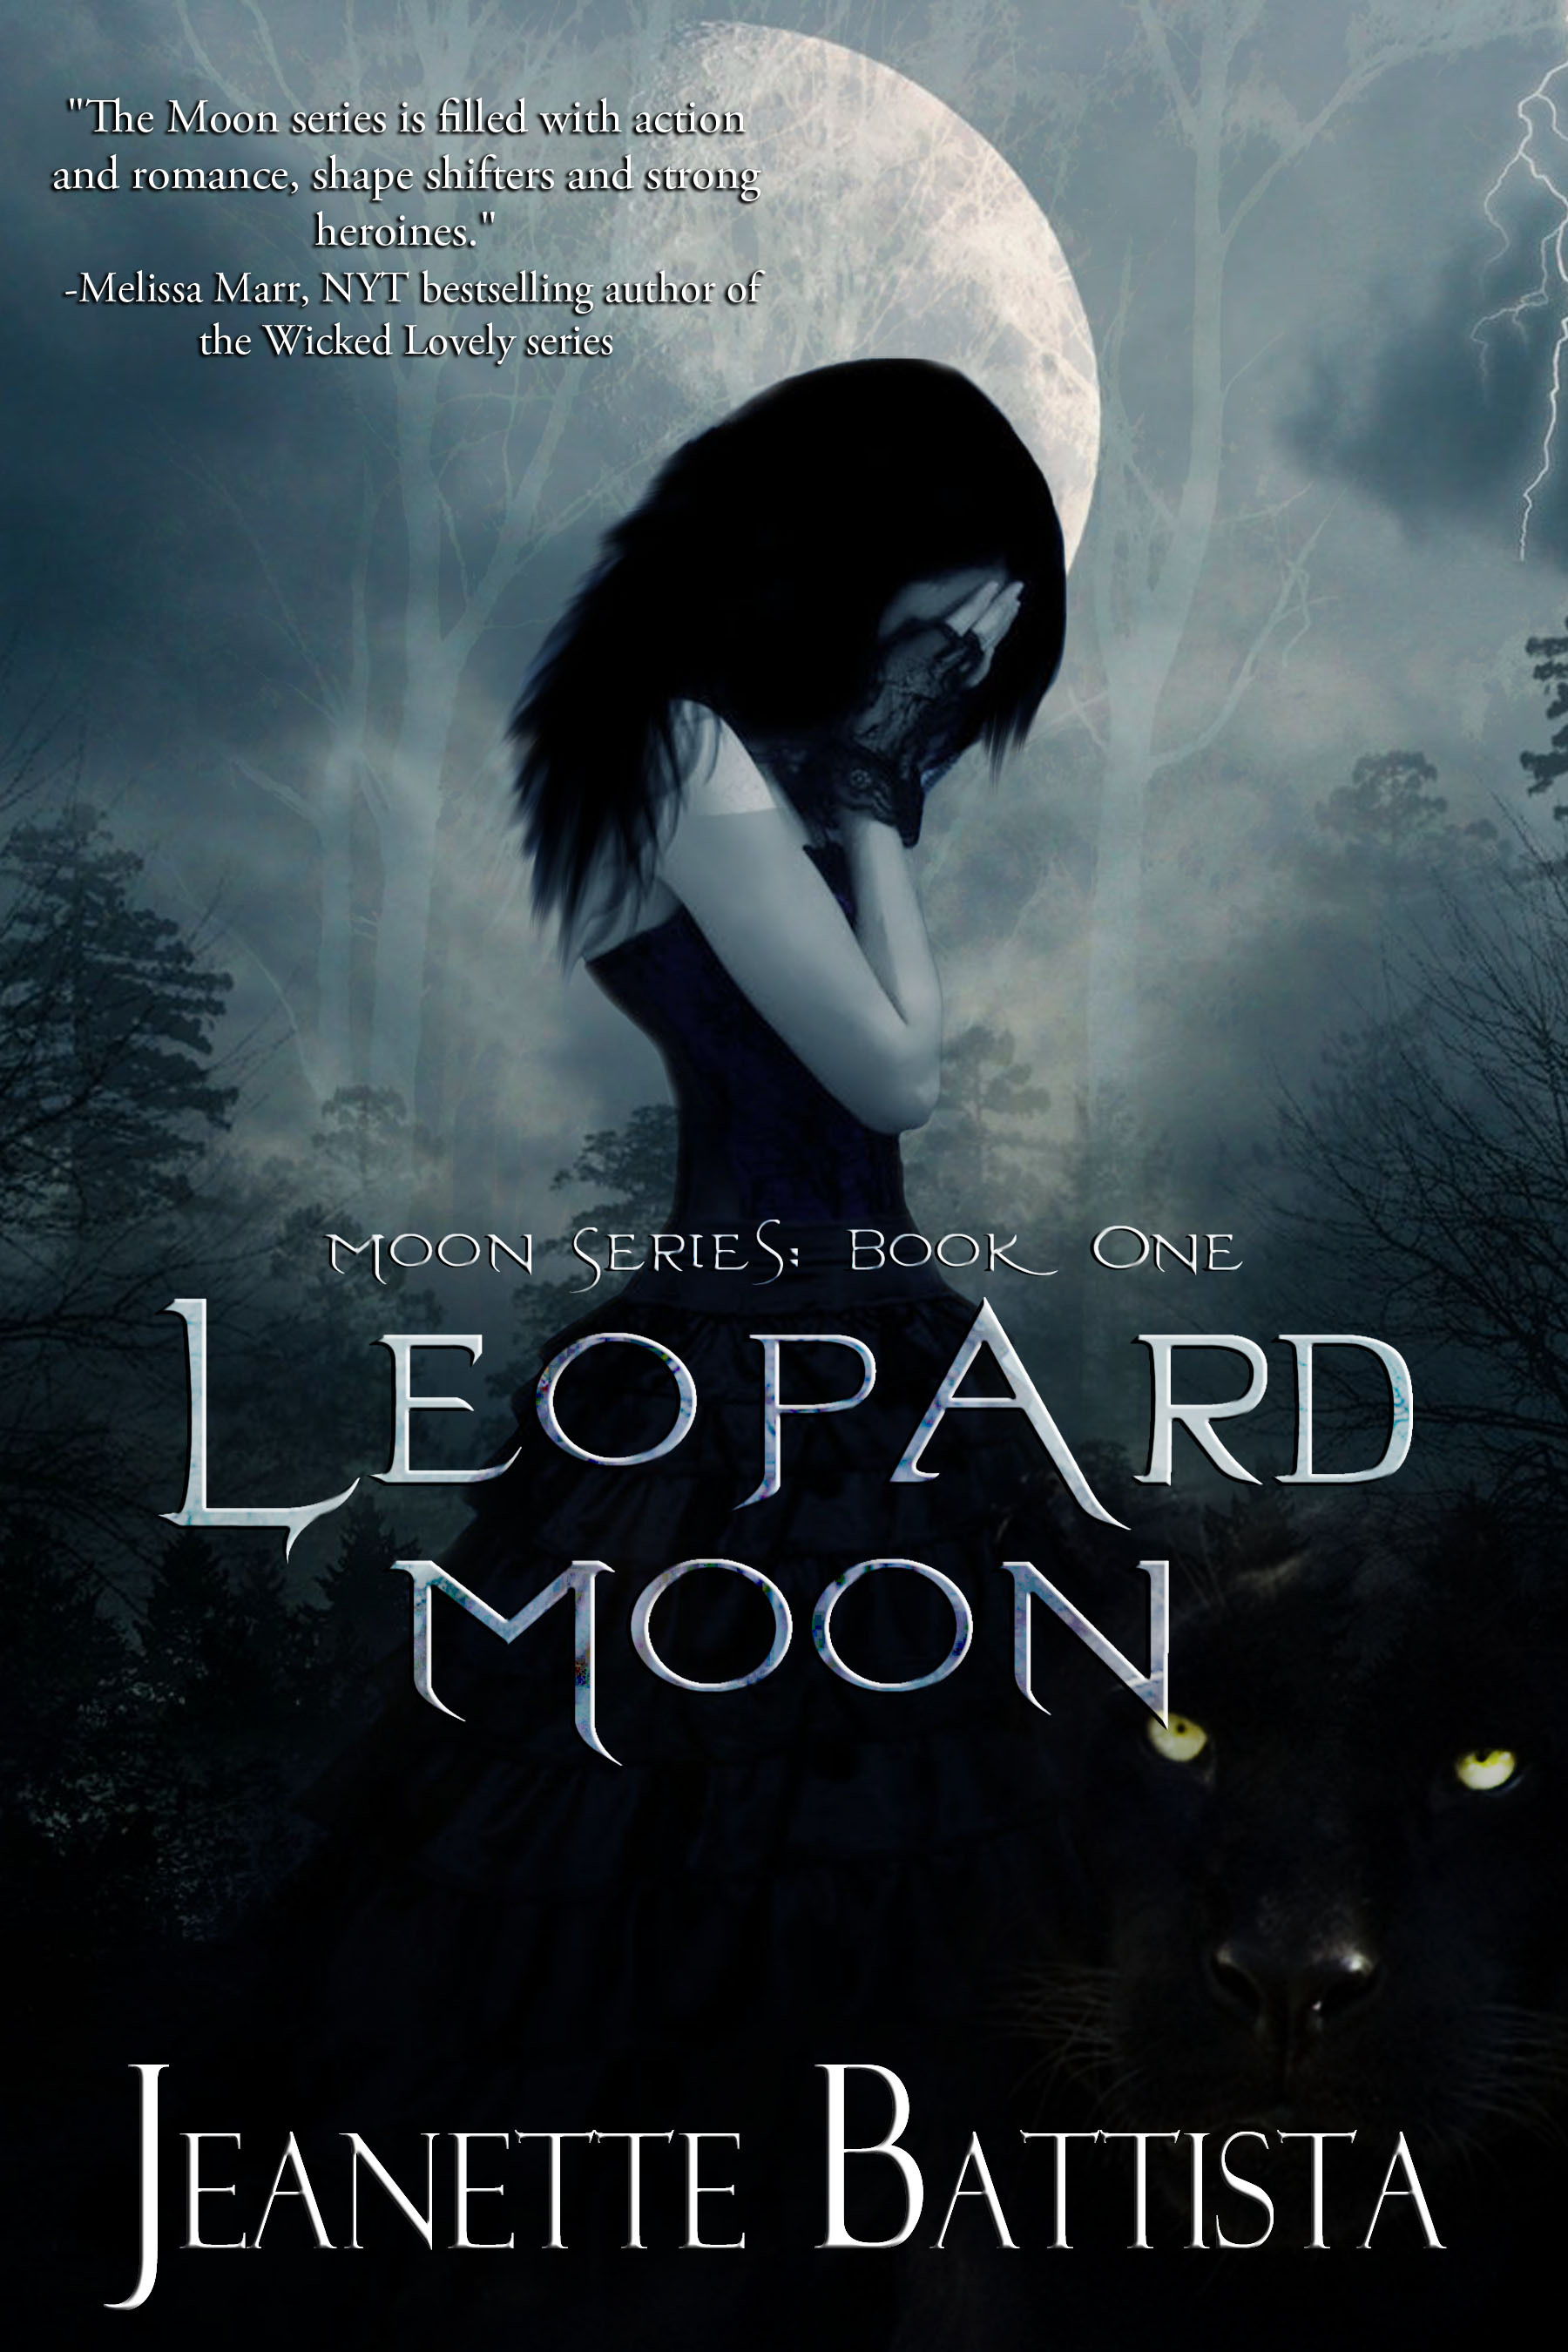 Leopard Moon (Book 1 of the Moon series)